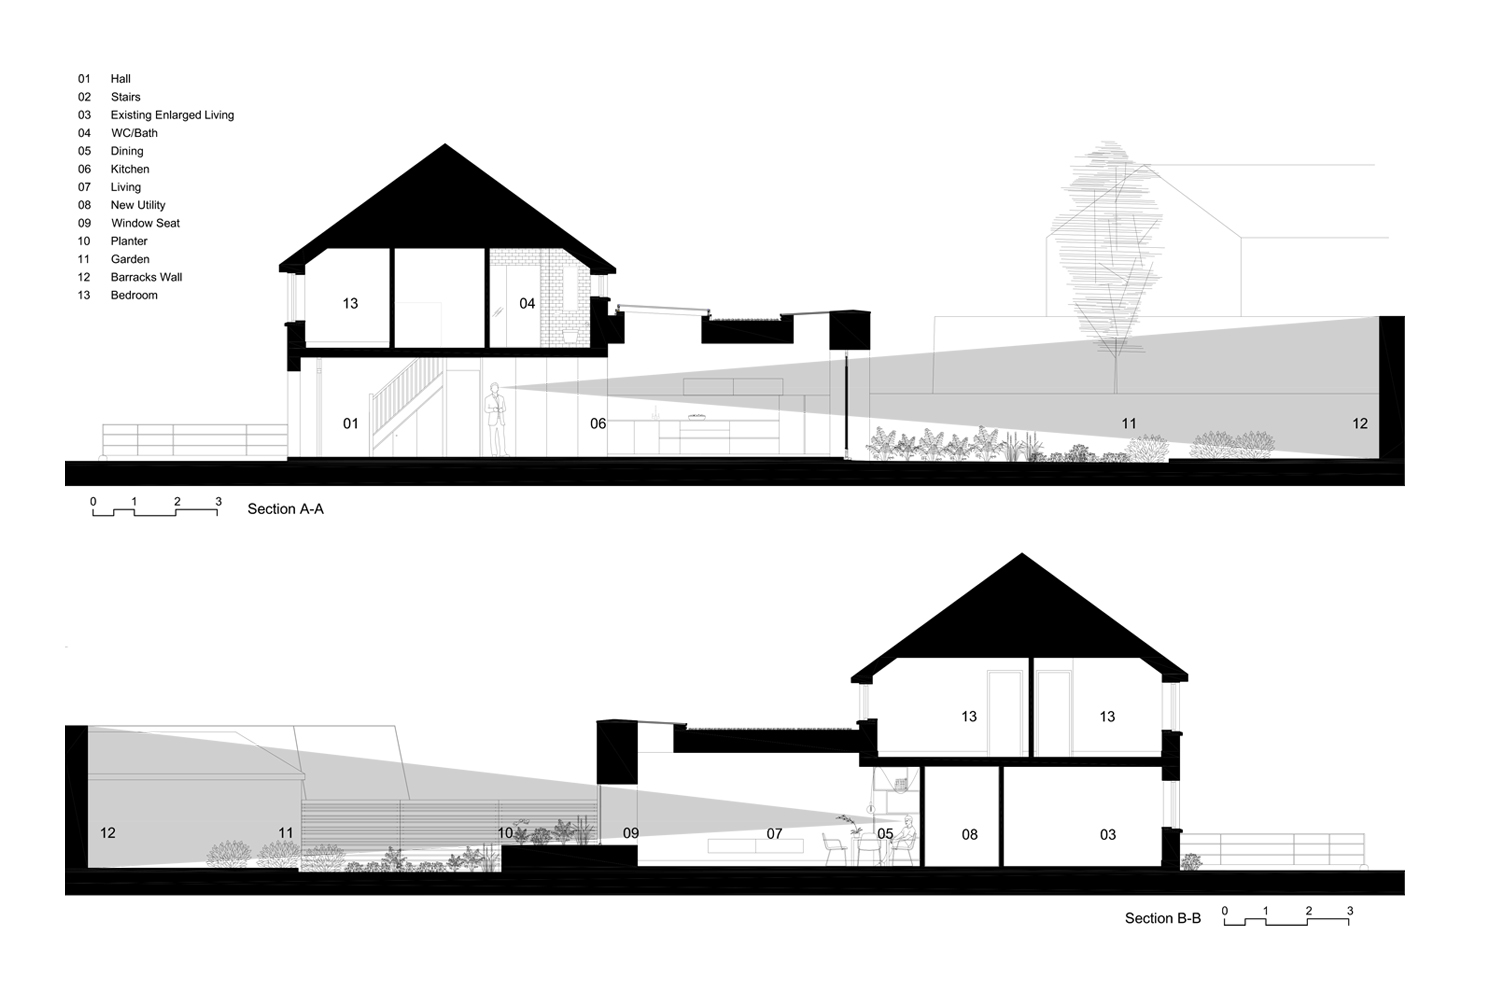 Architectural Farm Sections Section